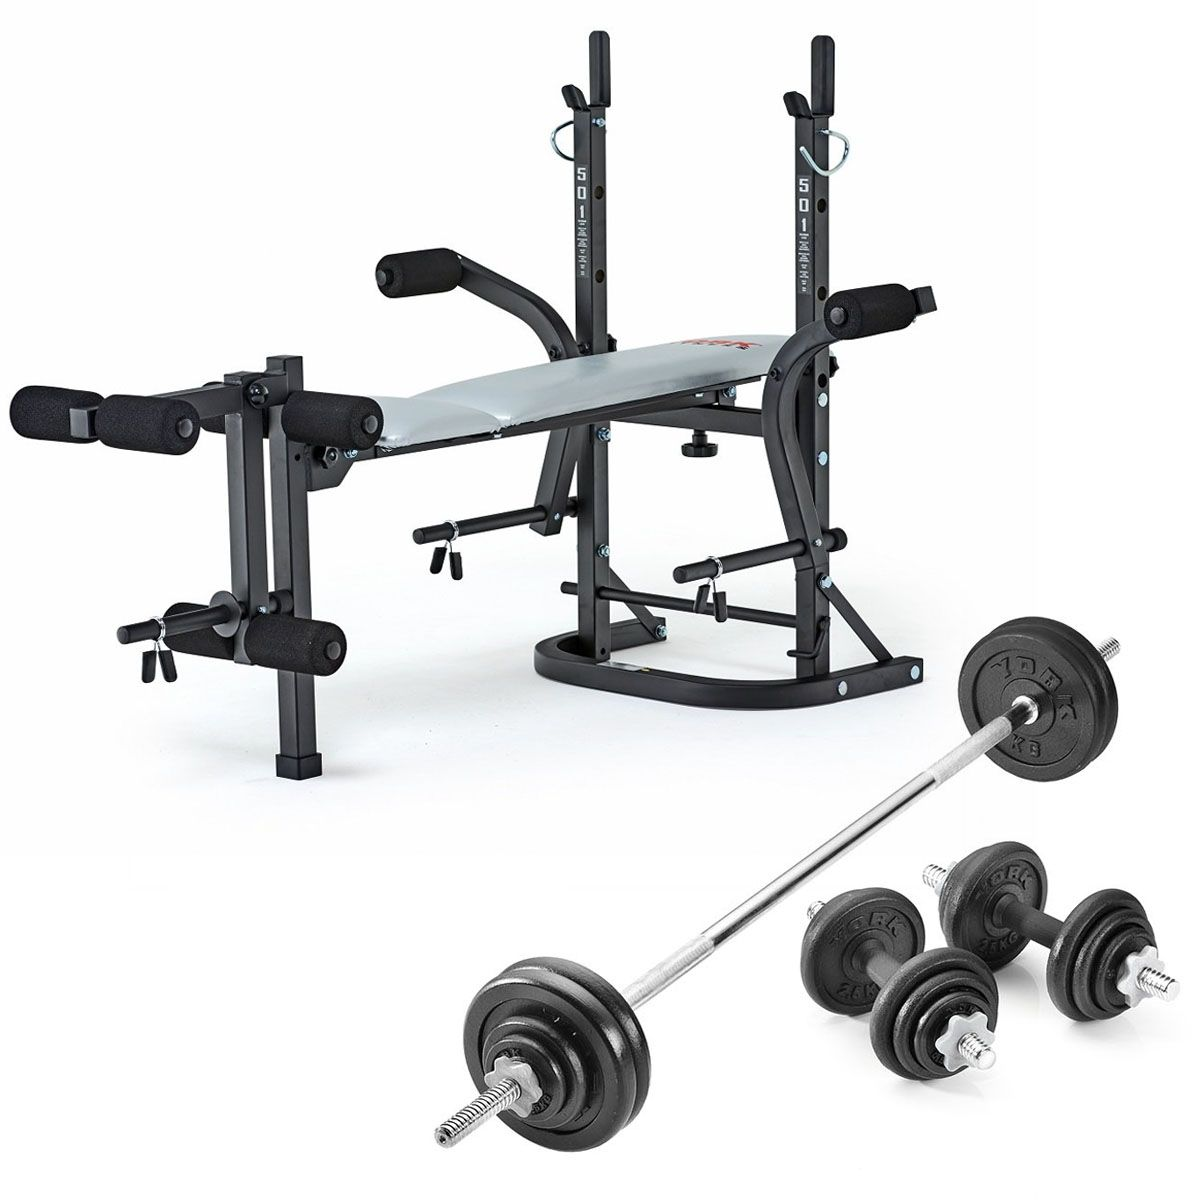 York b501 weight bench with 50kg cast iron weight set Weight set and bench